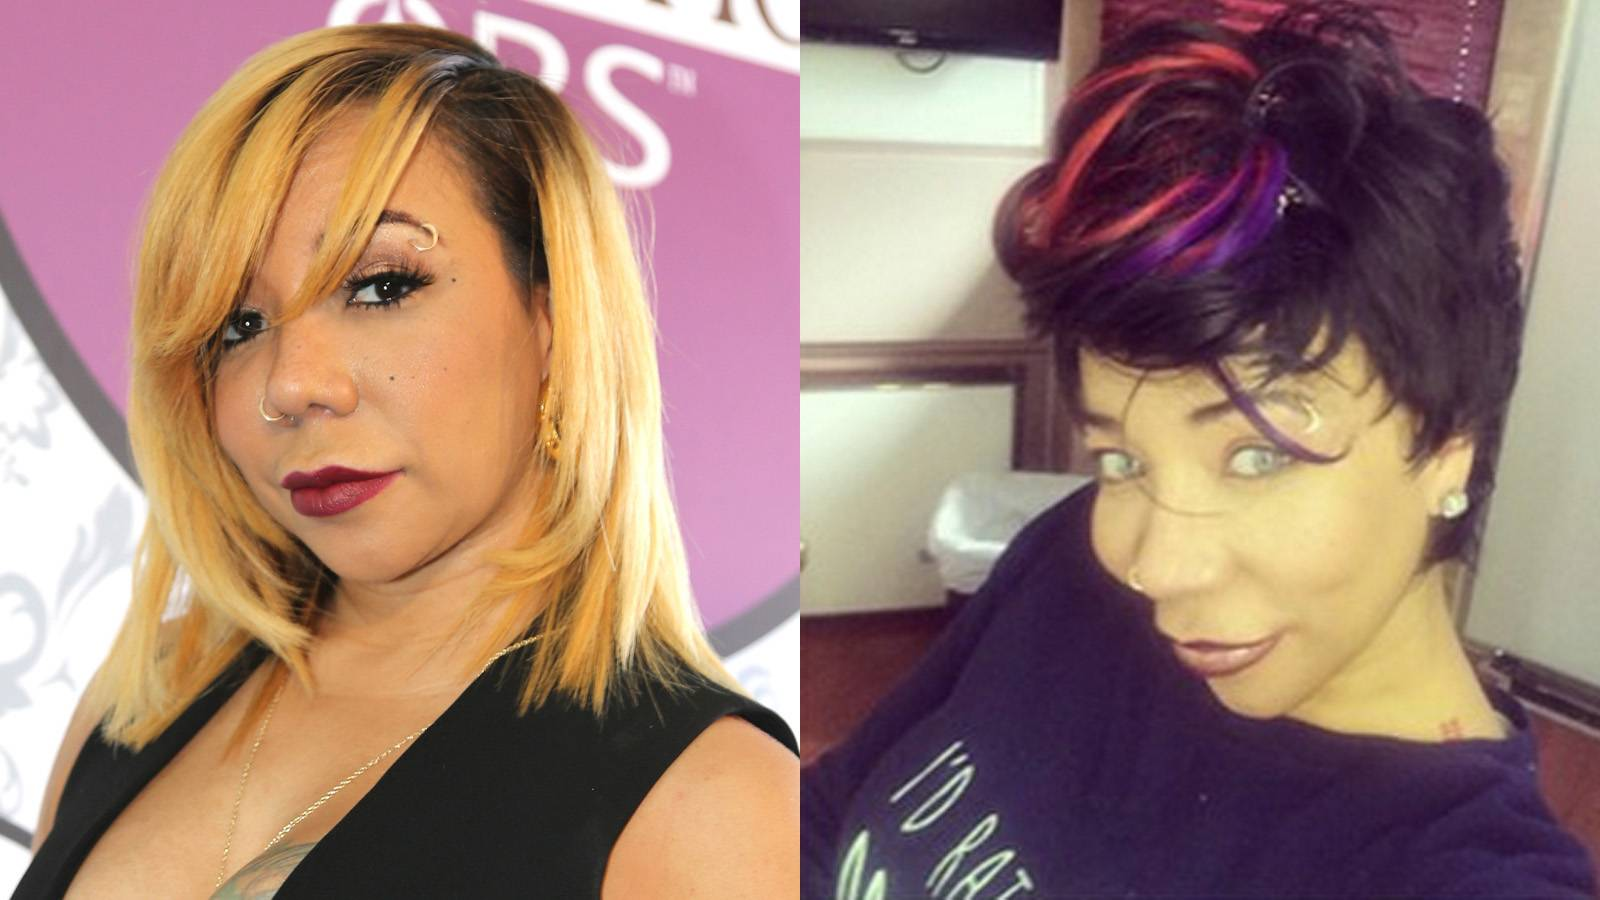 Tiny Defends Eye Color Change Surgery  - Tiny got a lot of backlash after debuting her new look. The T.I. & Tiny: The Family Hustle star got a procedure to permanantly change her eyes from dark brown to ice blue. Tiny flew to Africa to get it done and people have been dragging her for it. But now it's her turn. She went on Good Morning America to explain her extreme decision.   In short, she is happy with her decision and T.I. is cool with it as long as she's healthy. It's important to note that the dangerous procedure can potentially cause blindness in some people. Good luck with that, and hopefully we don't see a spike in people looking creepy with neon blue eyes.(Photos from left: Johnny Nunez/BET/Getty Images for BET, Tiny Harris via Instagram)